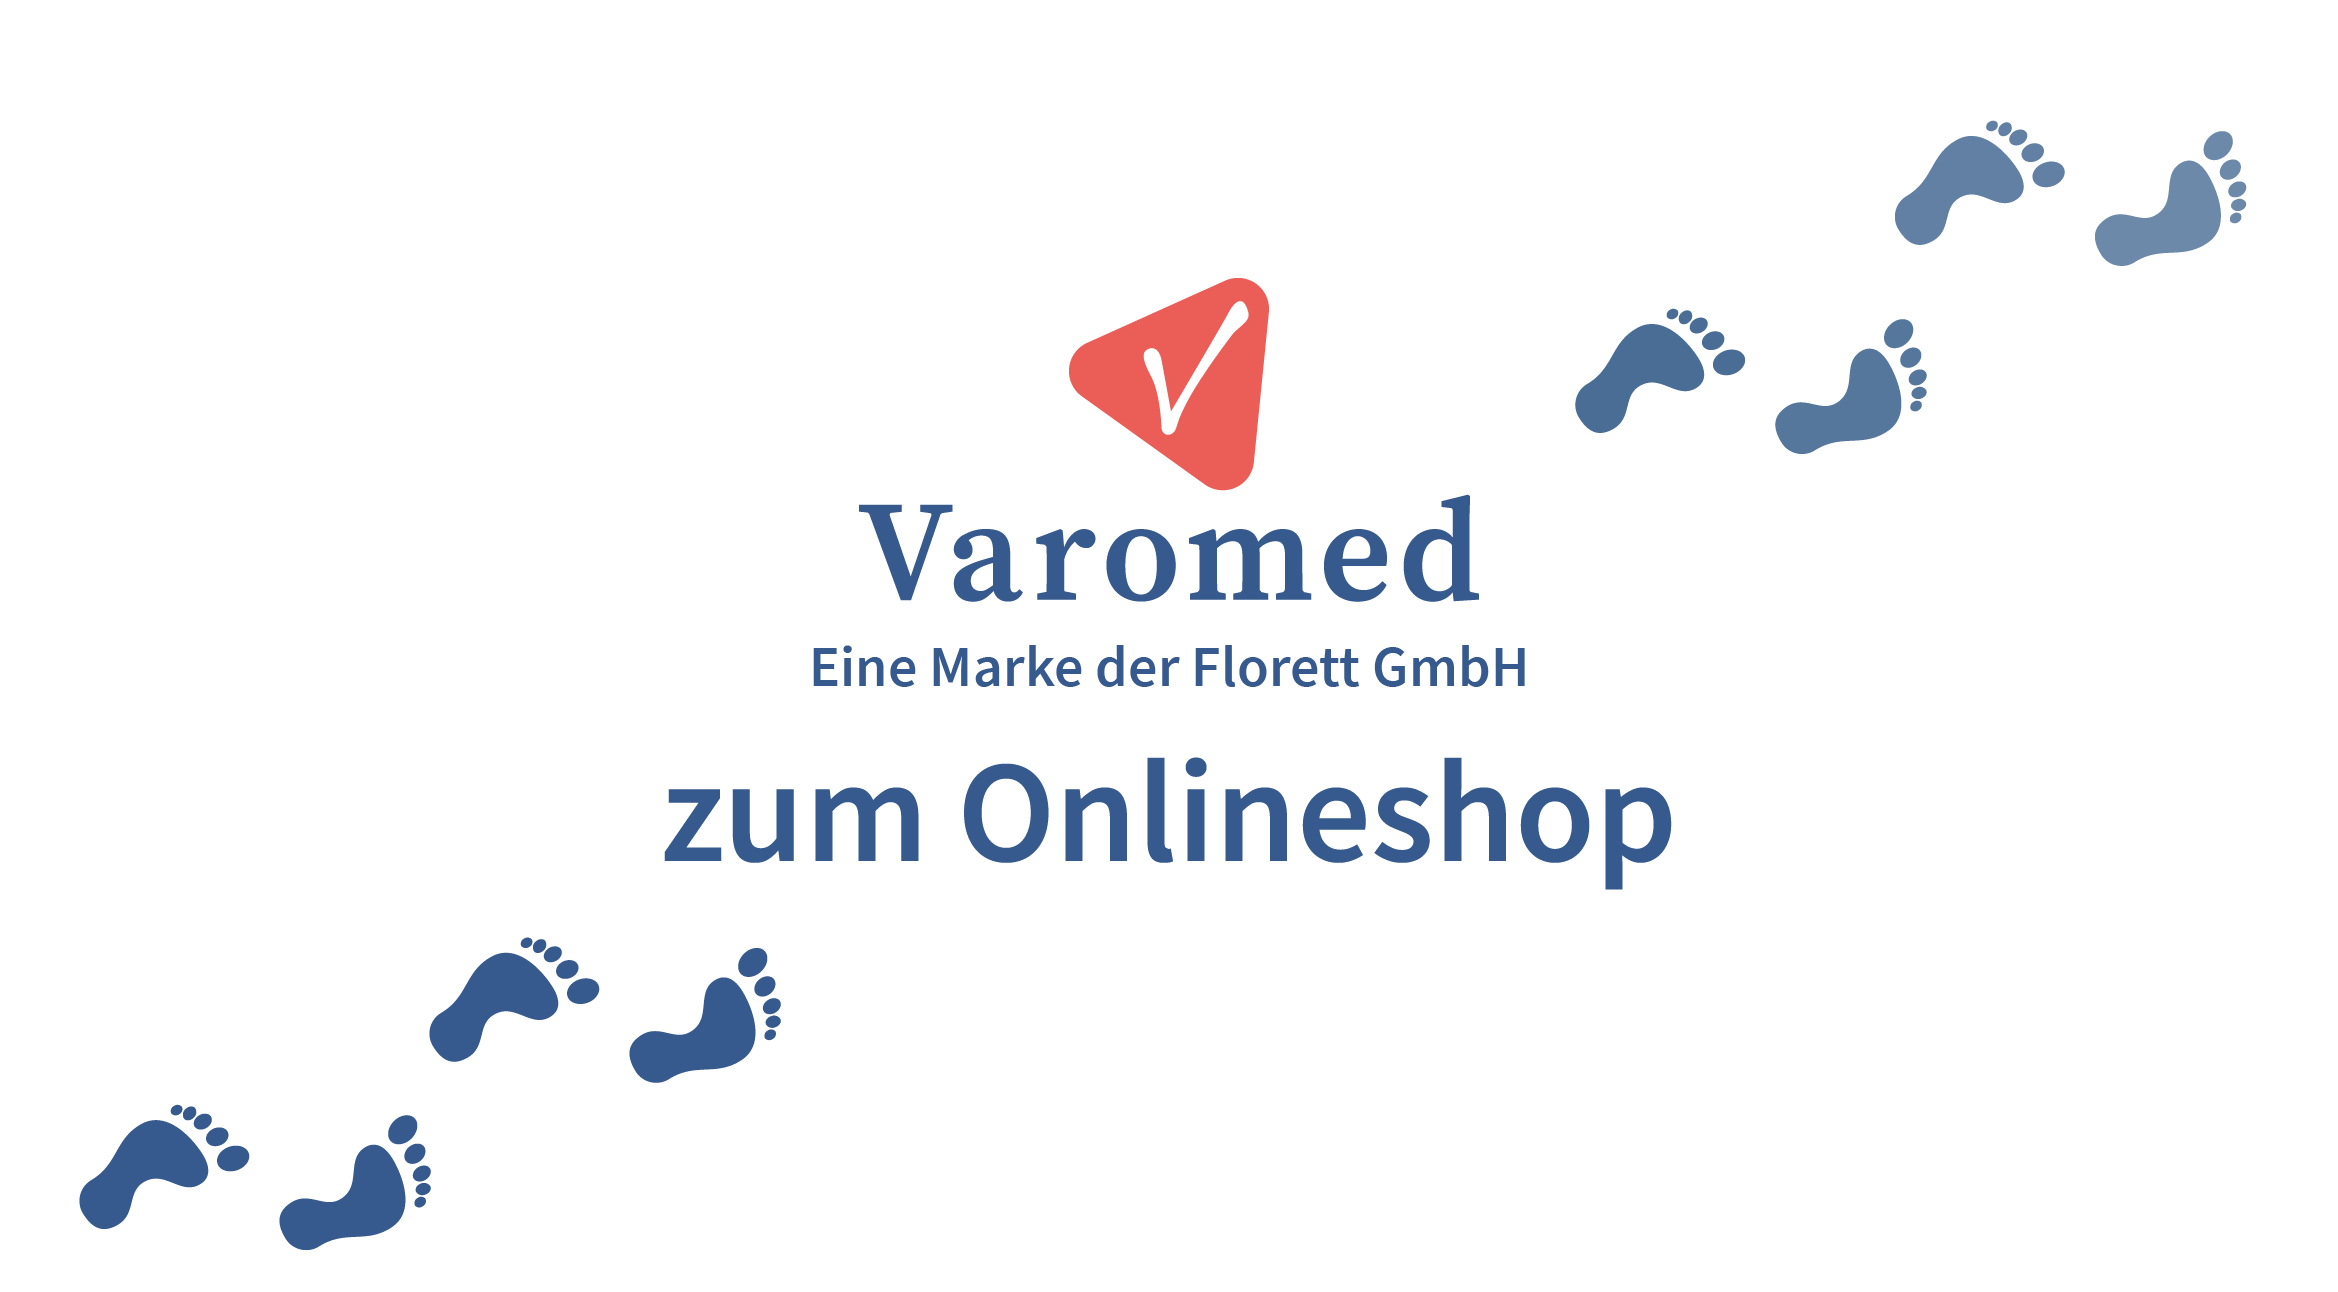 Varomed Onlineshop